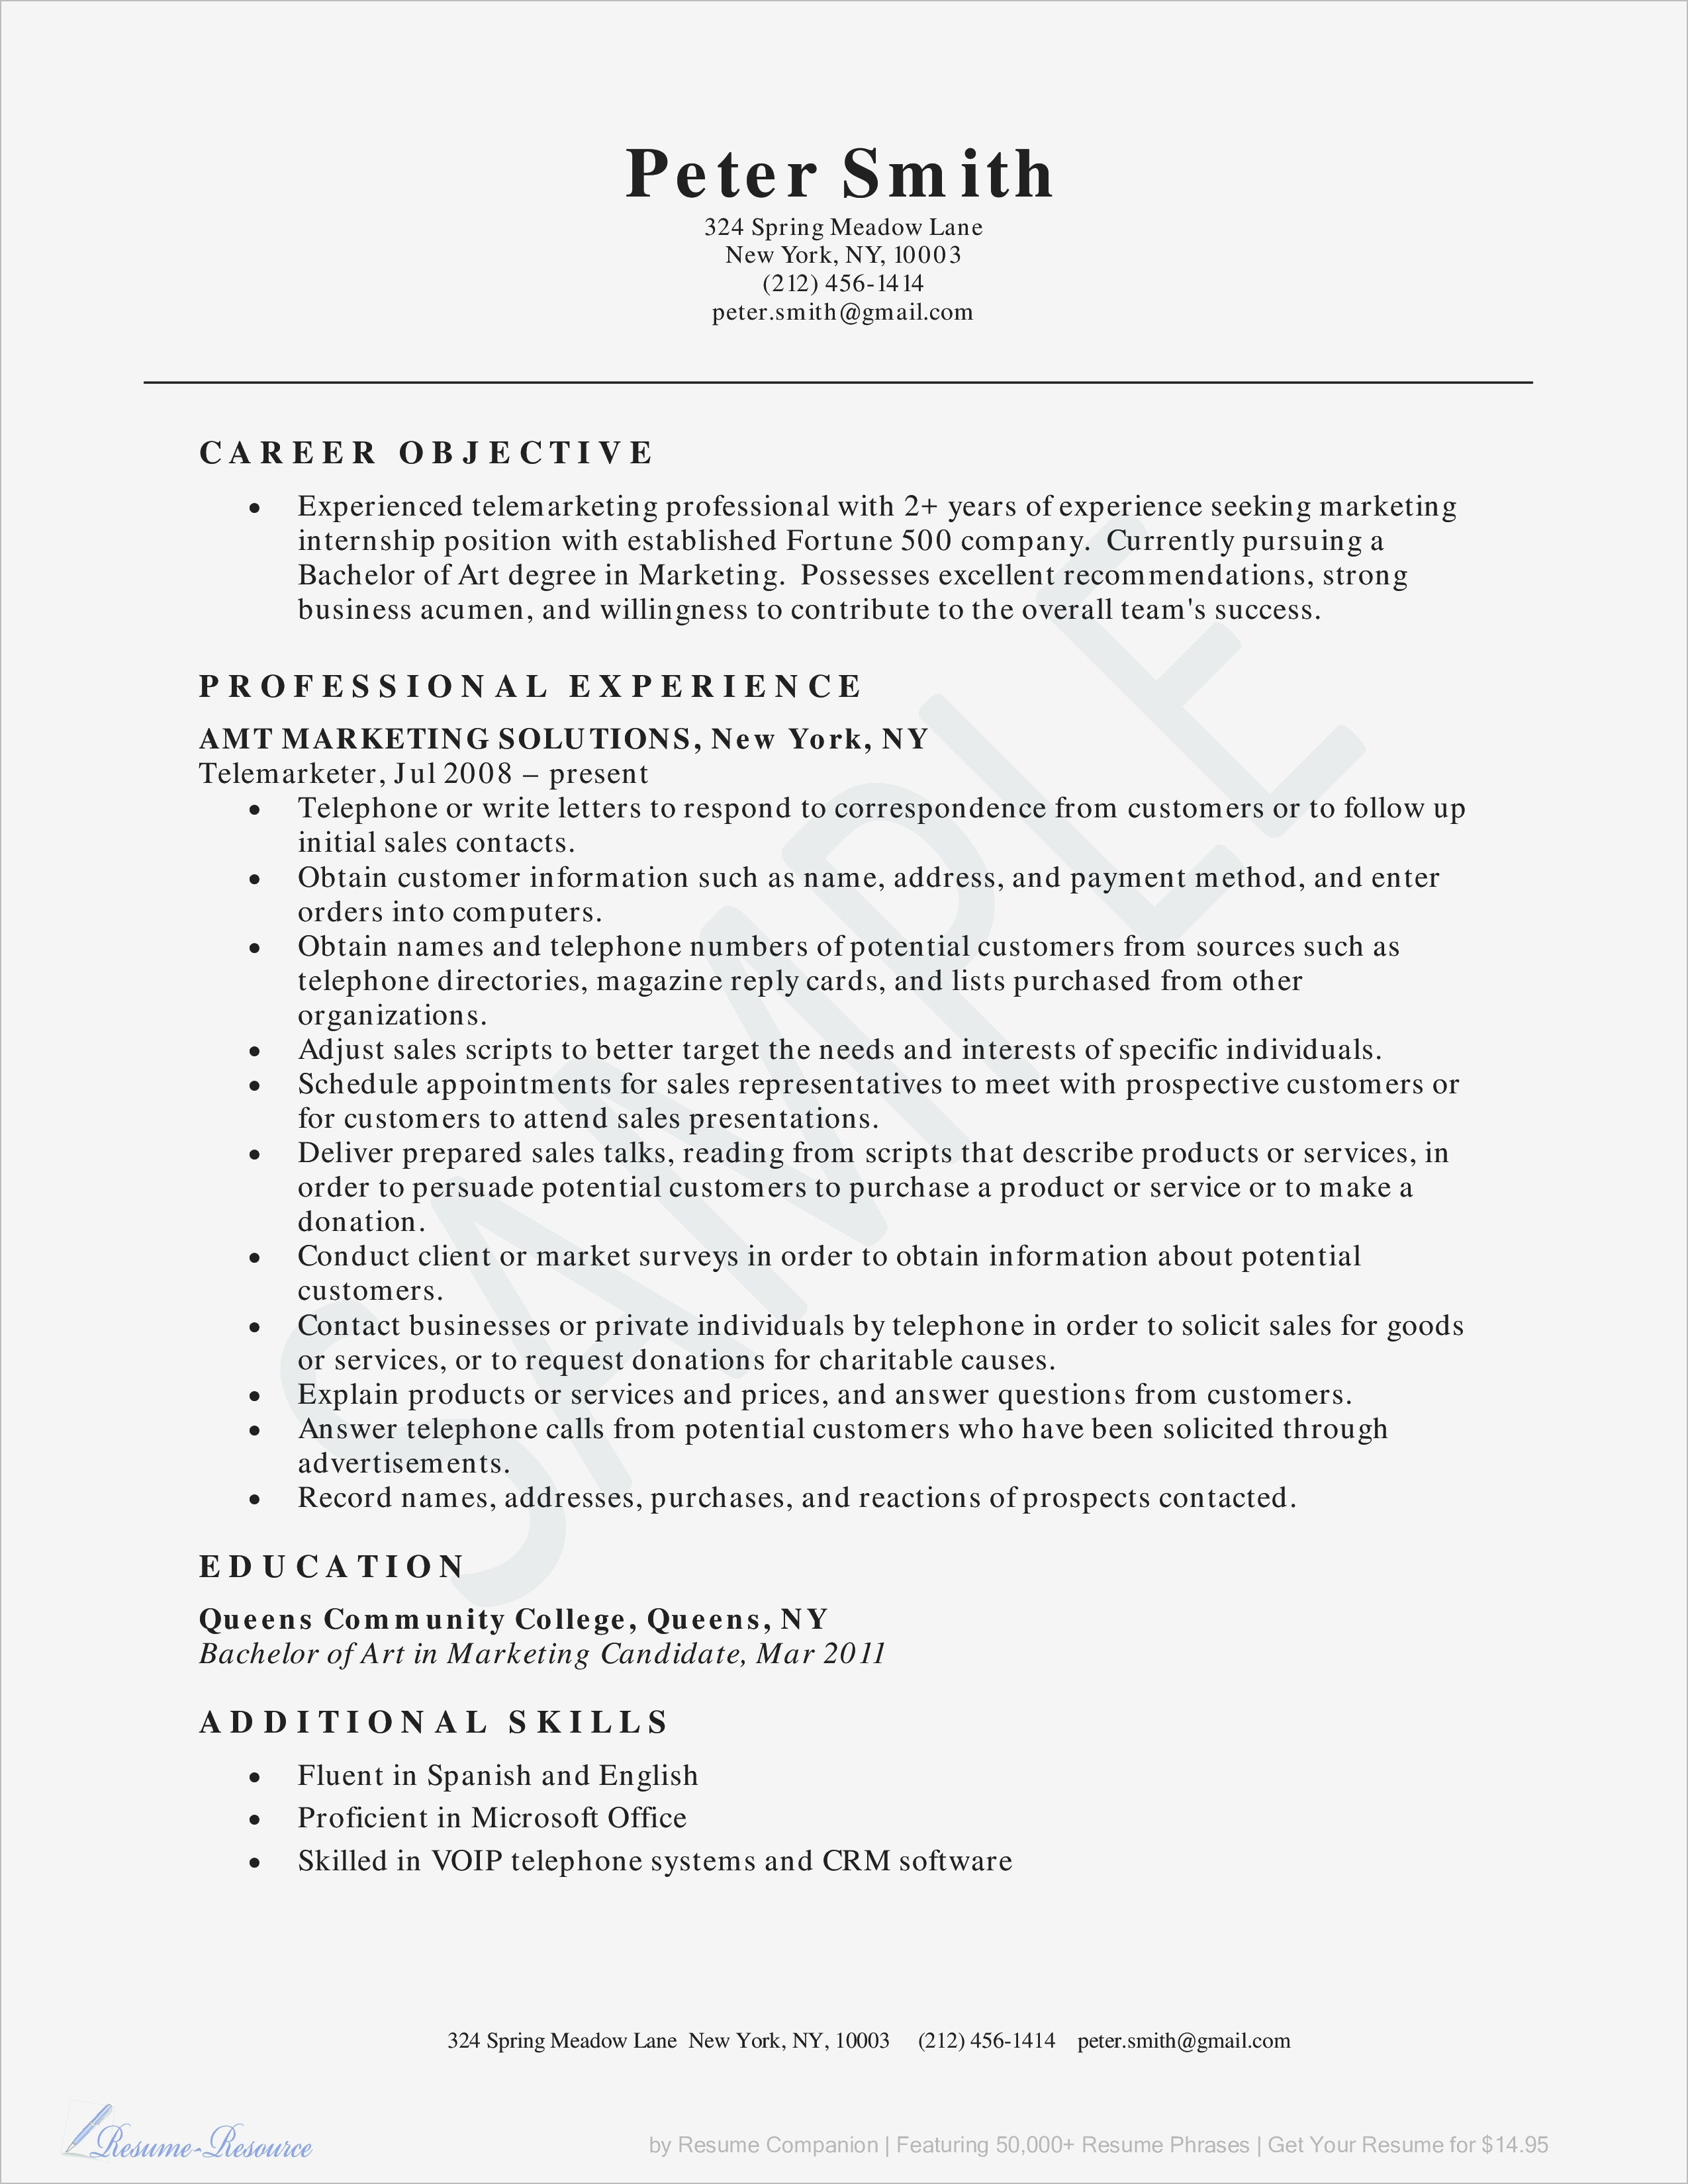 Resume Template for Retail Sales associate - How to Write A Resume for Sales associate Reference Sales